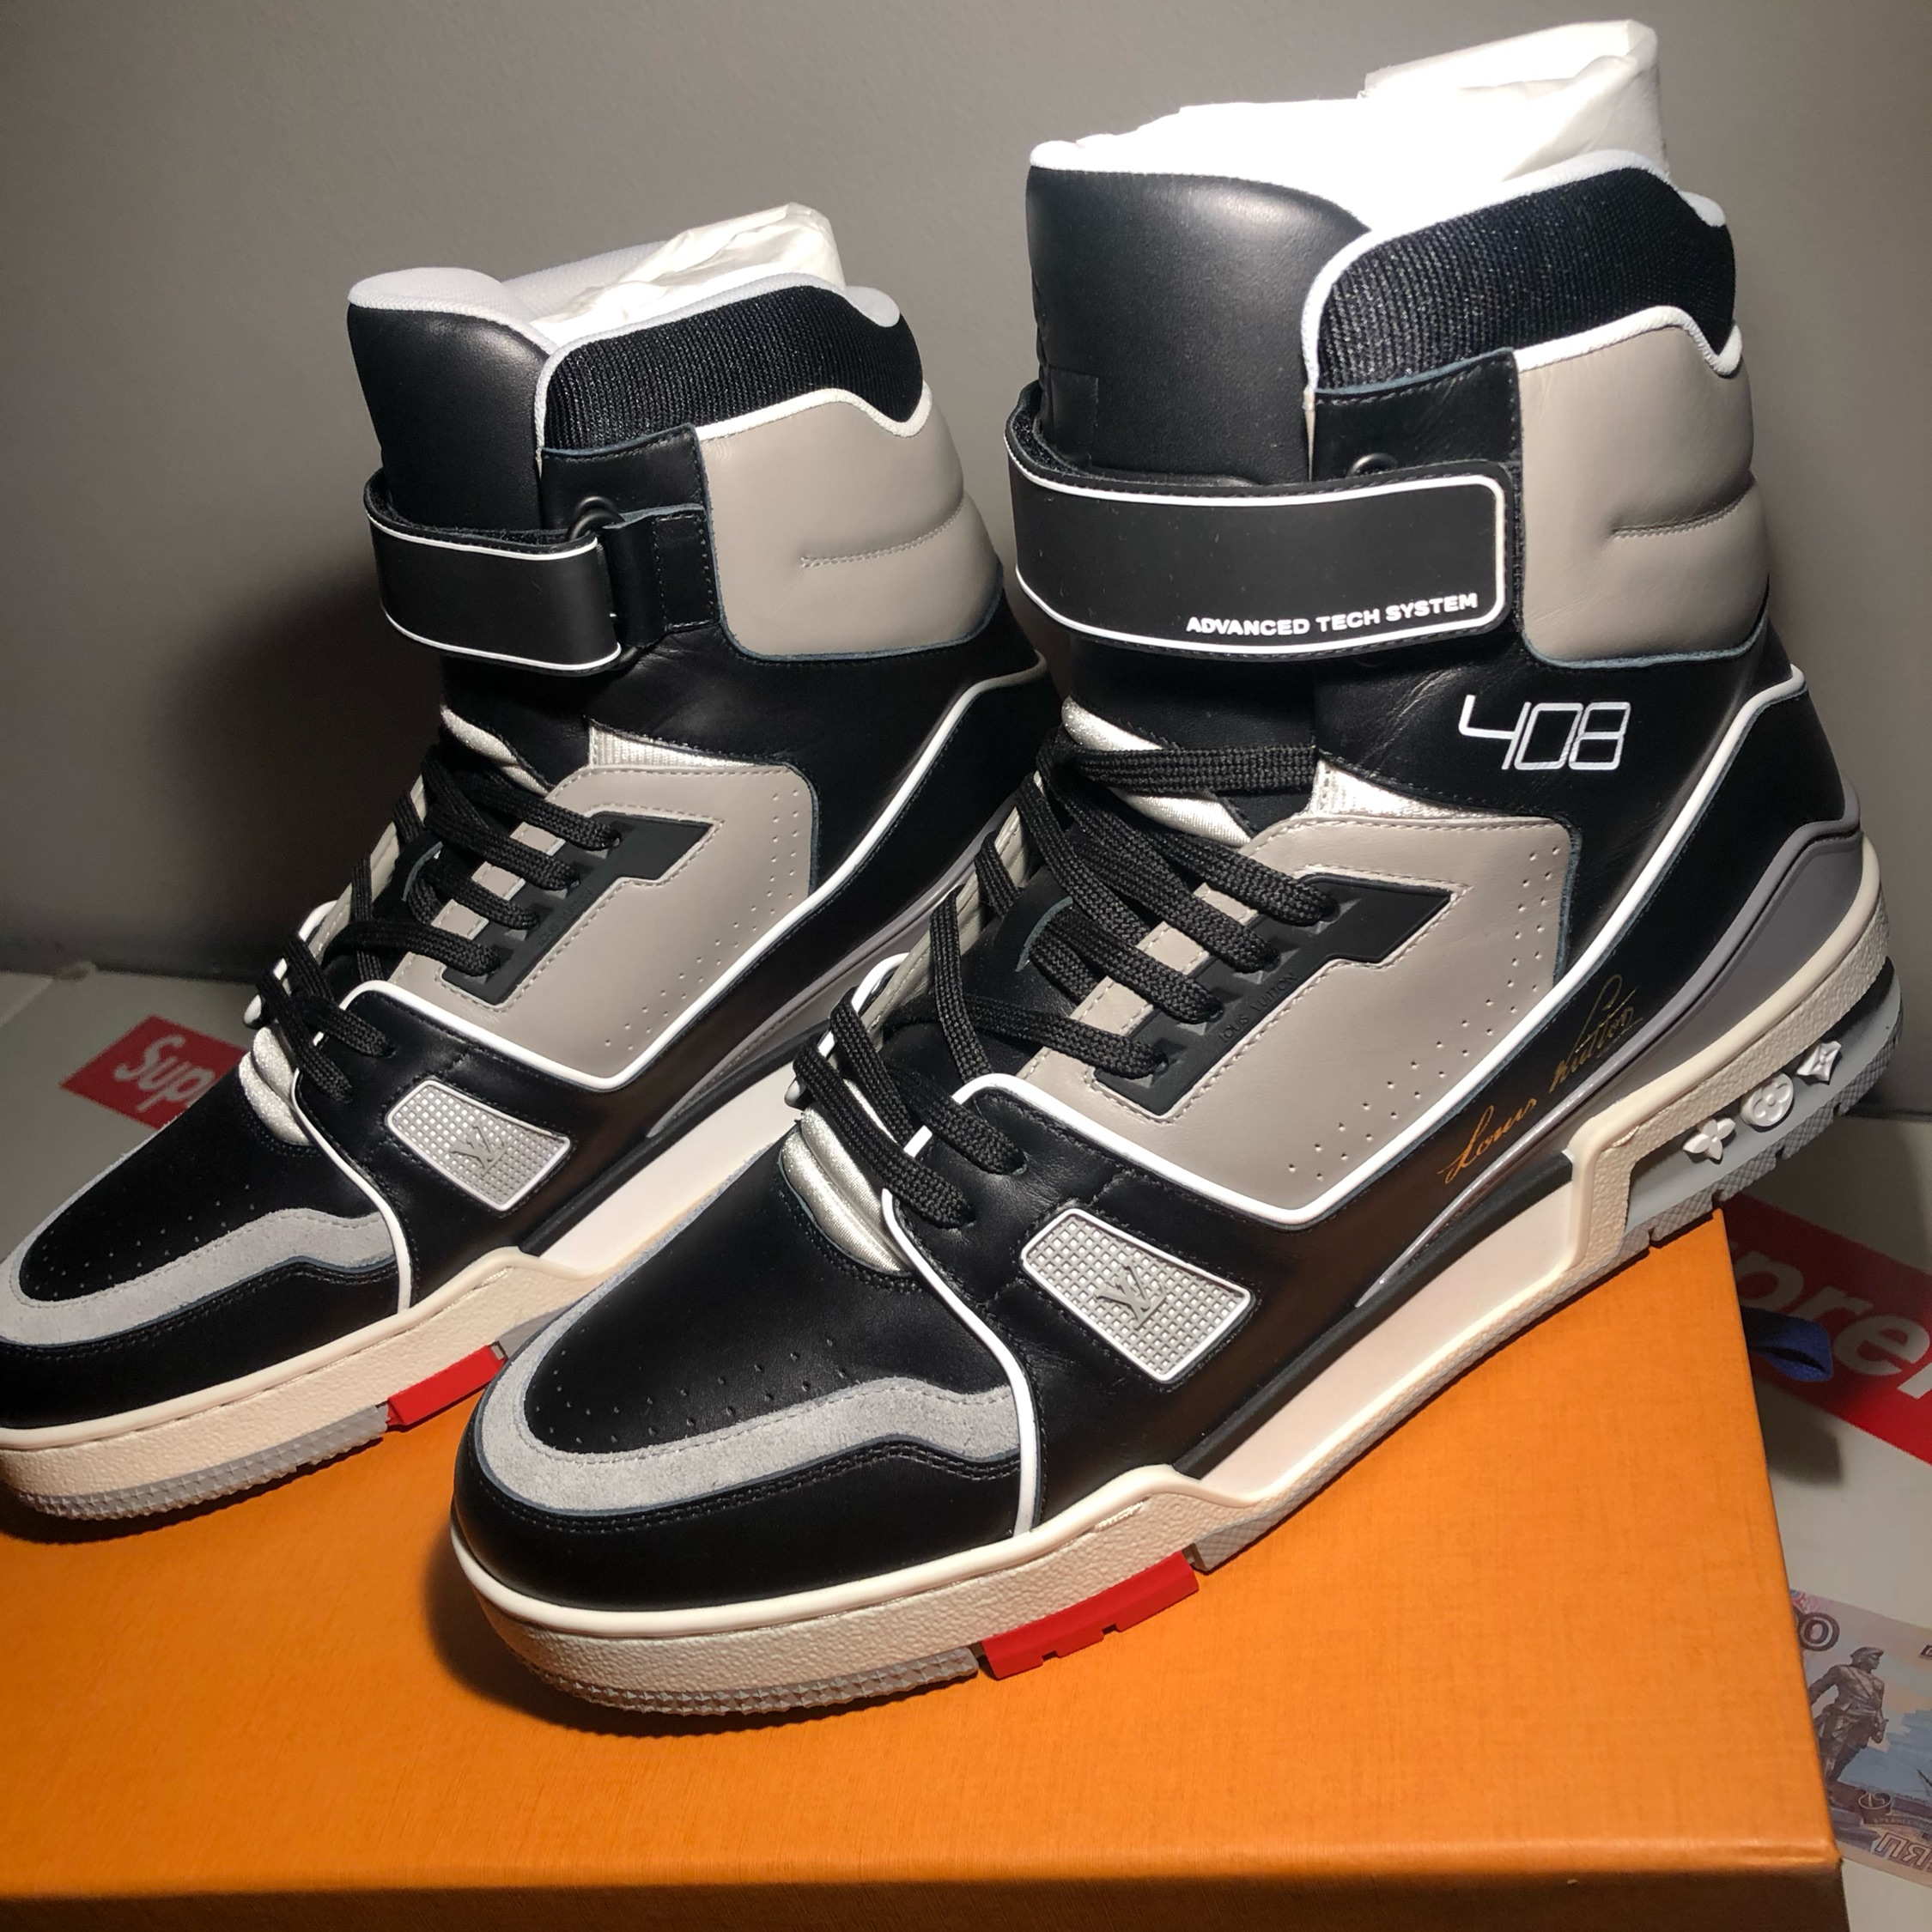 Men's Artistic Director Virgil Abloh was inspired by vintage basketball shoes in creating his first Louis Vuitton sneaker design. The LV Trainer is both retro and innovative while incorporating several of Louis Vuitton's signatures and featuring exceptional Italian craftsmanship.